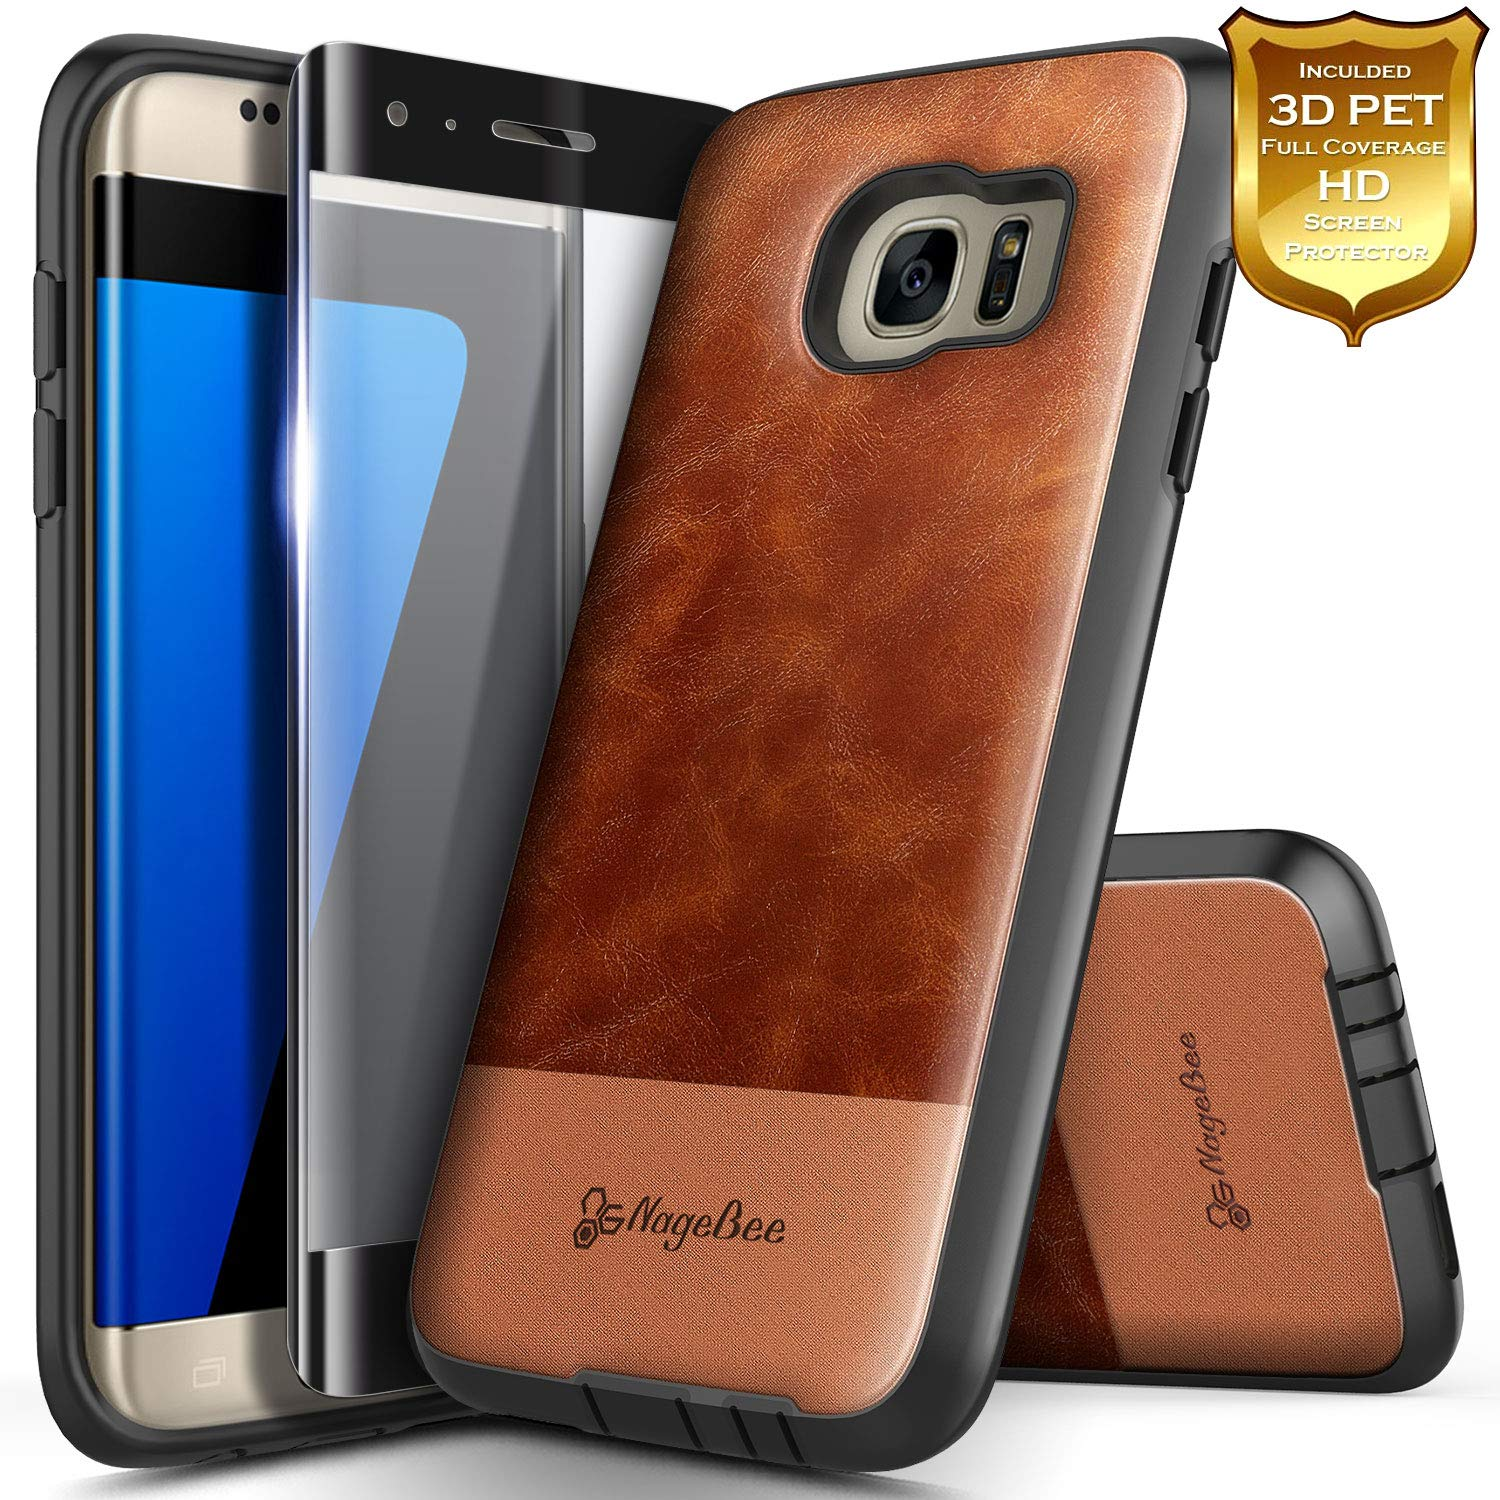 Galaxy S7 Edge Case with Screen Protector